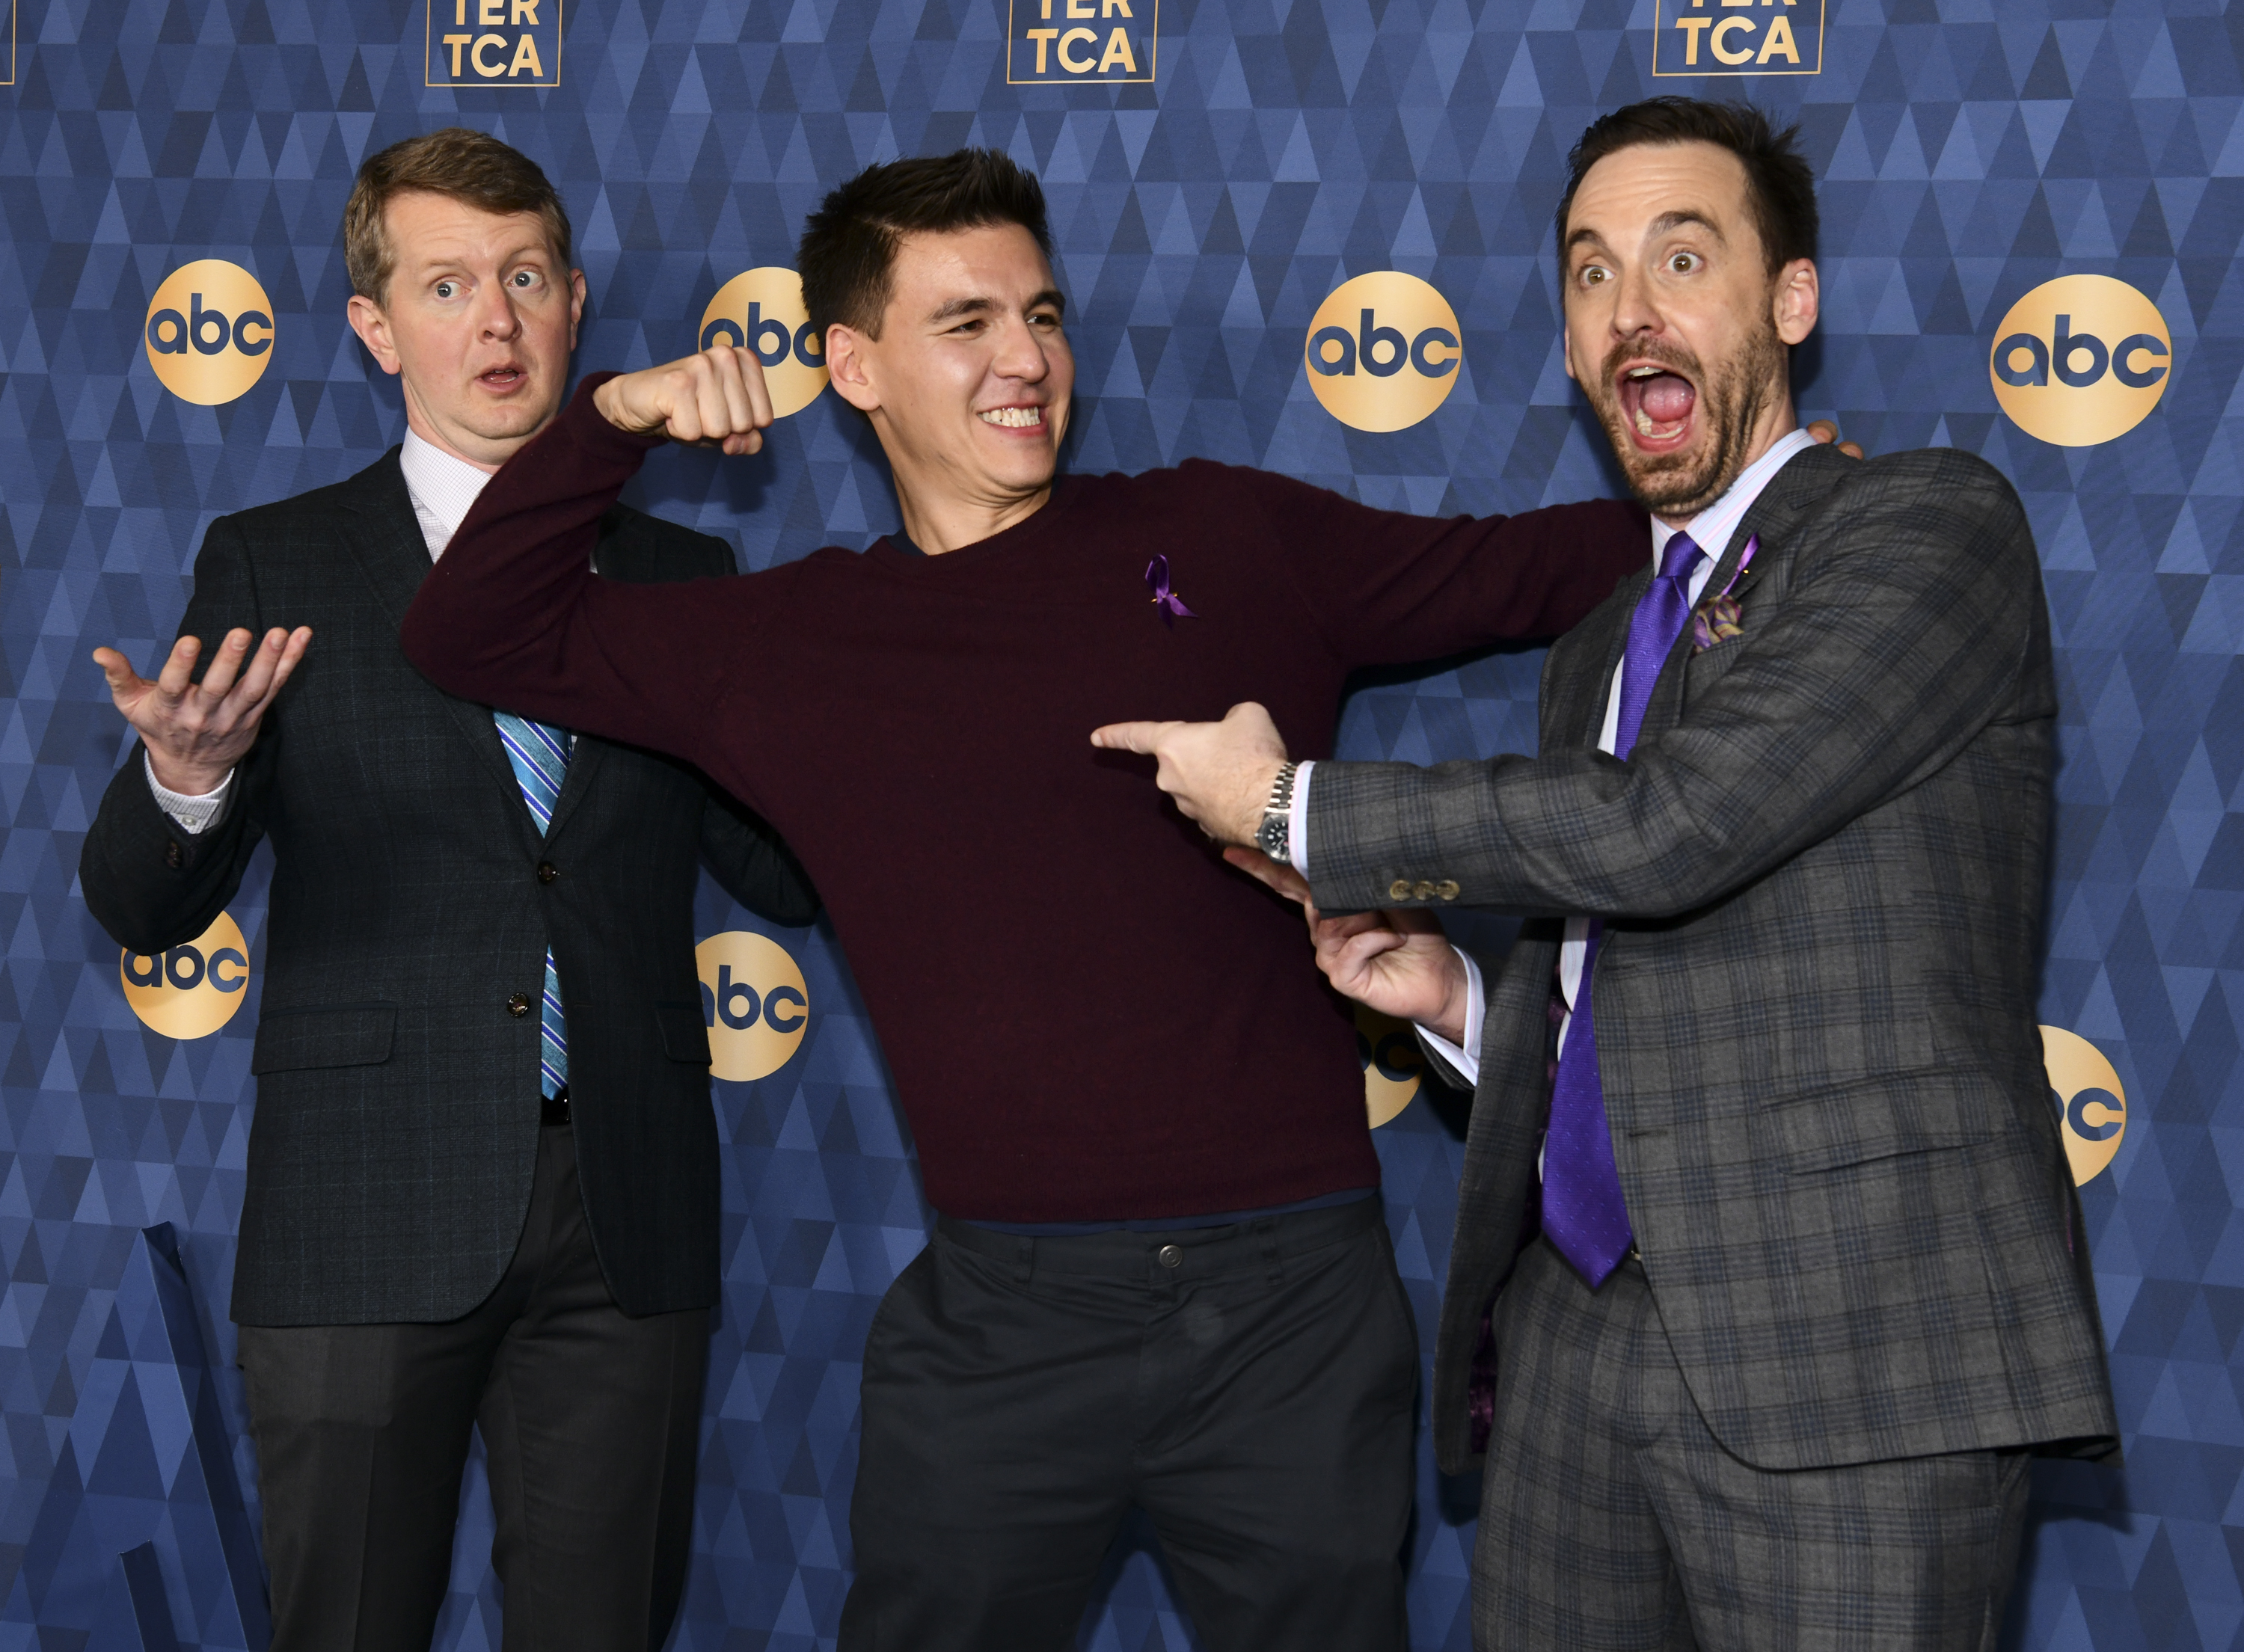 Ken Jennings, James Holzhauer, and Brad Rutter attend the ABC Television's 2020 Winter Press Tour on Jan. 8, 2020 in Pasadena, California.